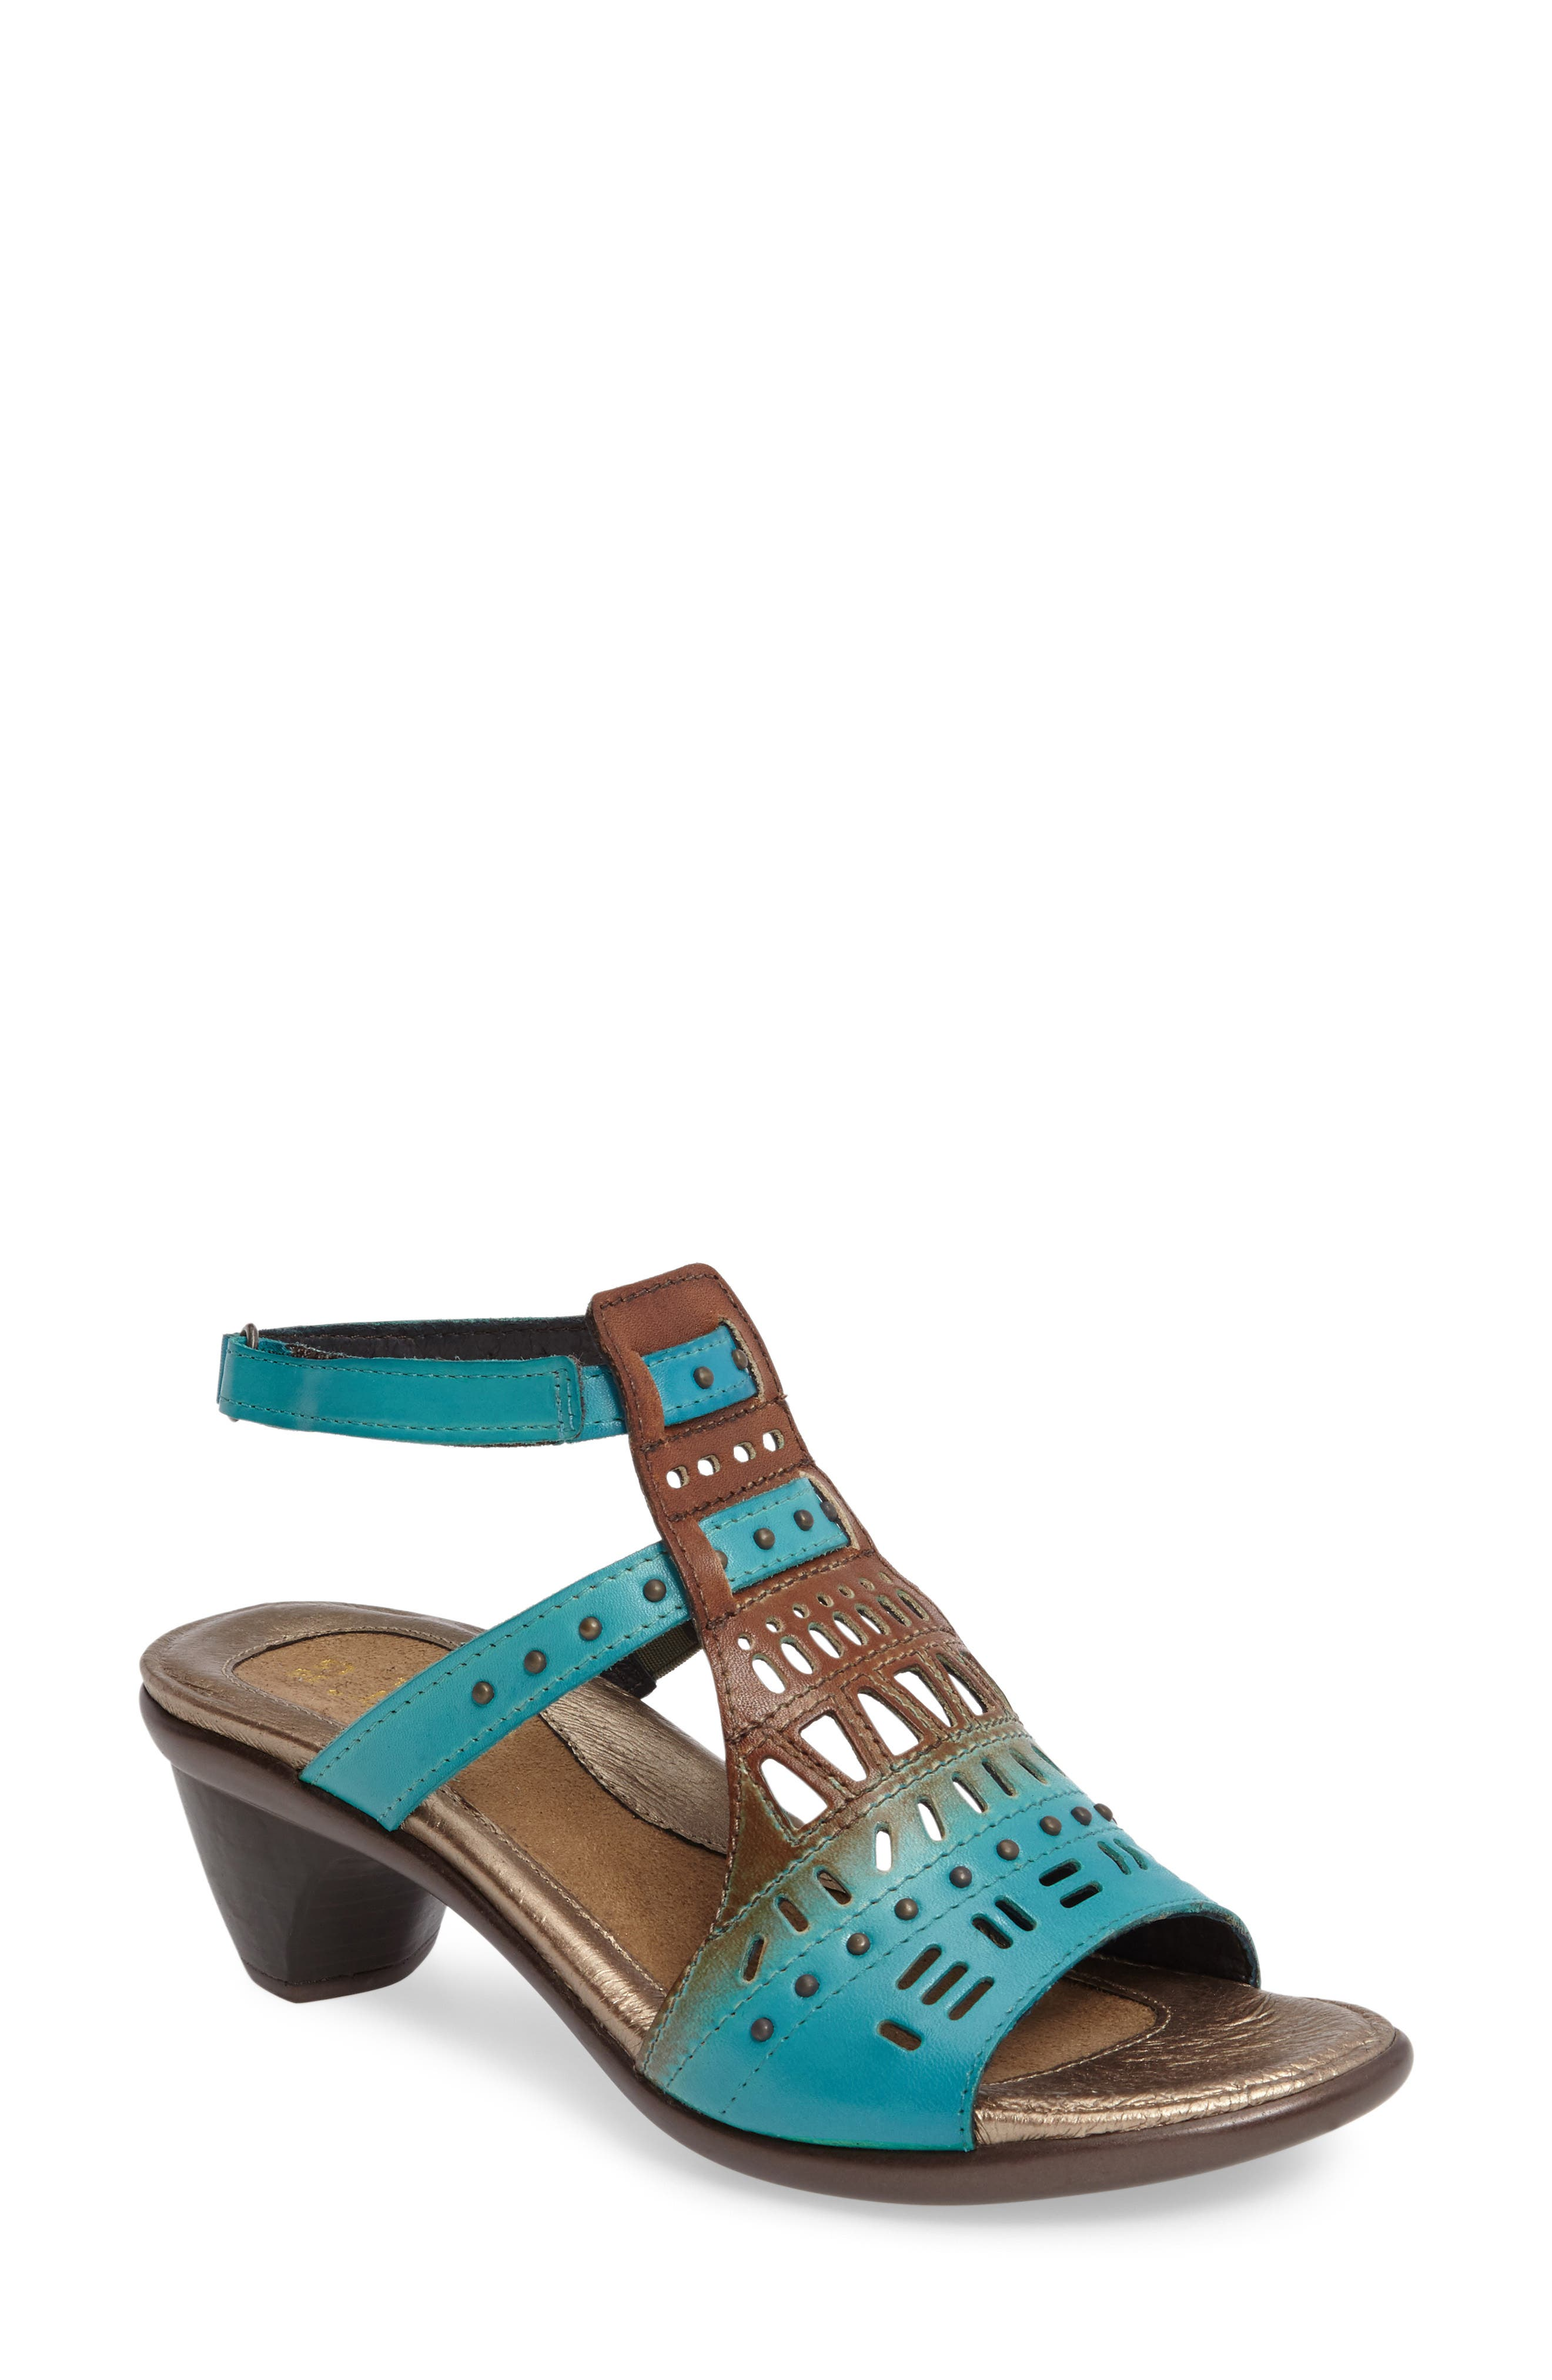 'Vogue' Sandal,                         Main,                         color, TEAL BROWN LEATHER